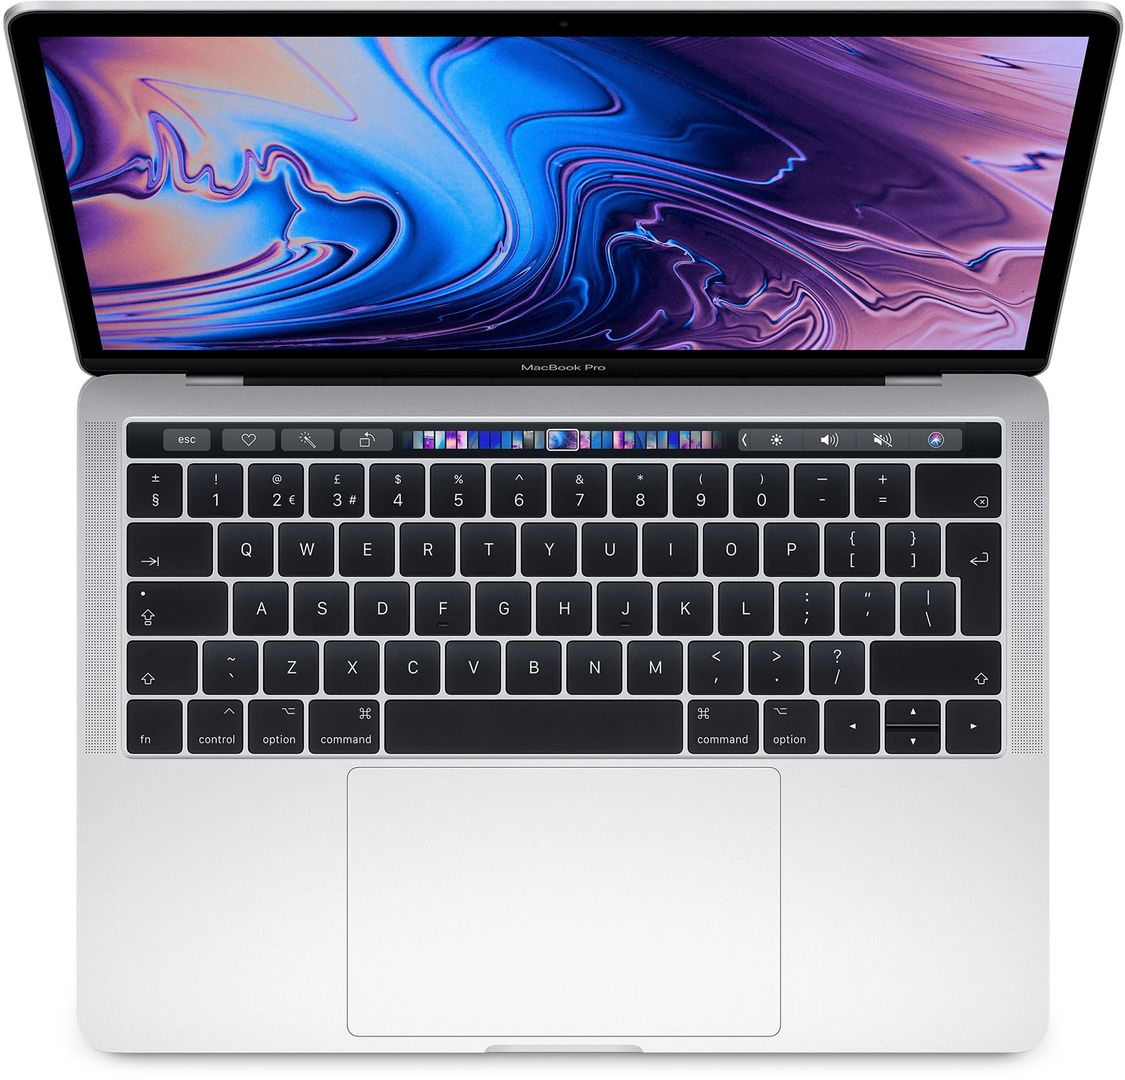 APPLE MBP 13.3SG 1.4GHZQC 8GB 256GB